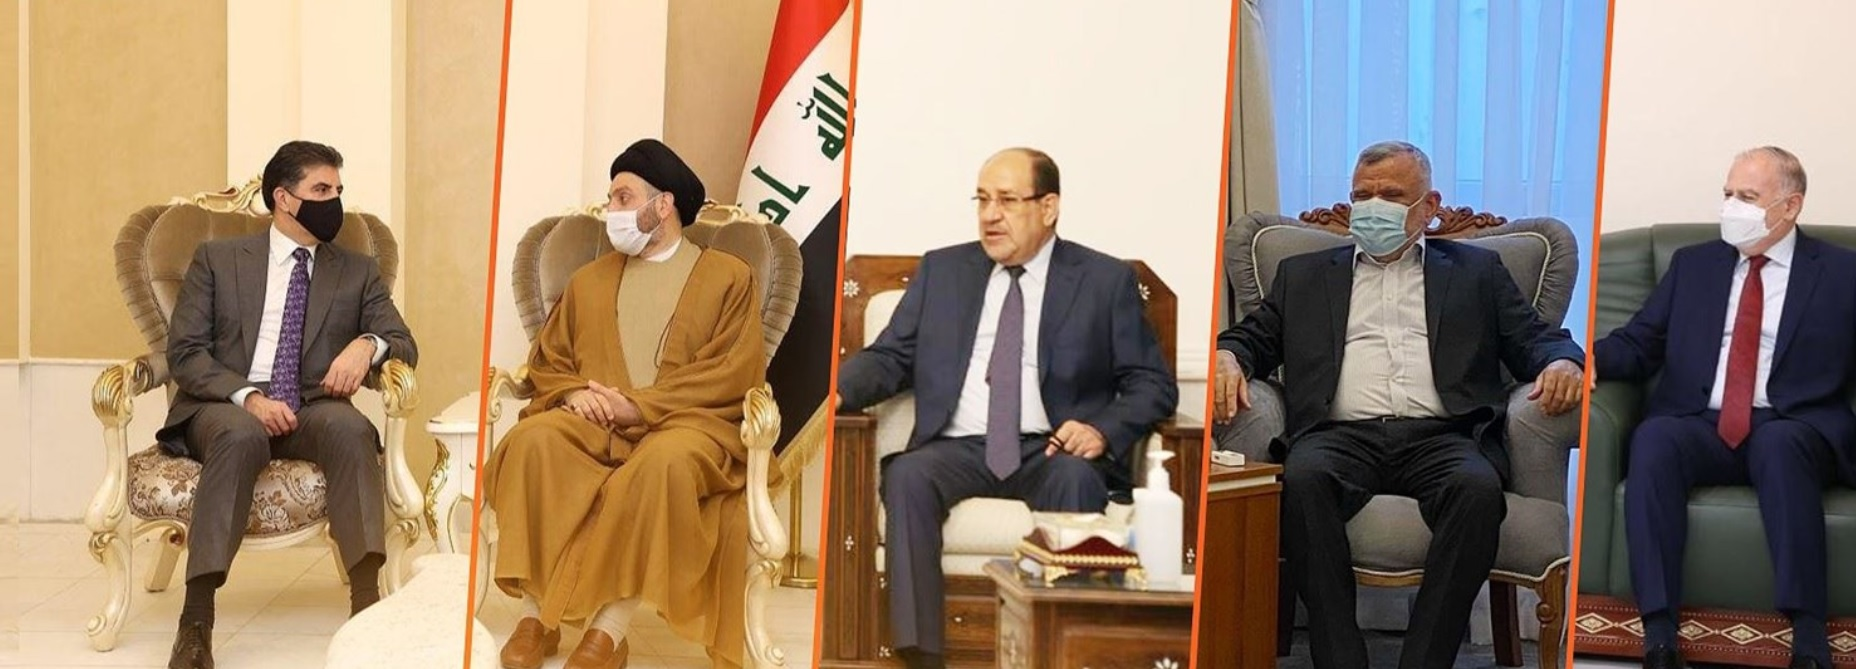 Regional President for Iraqi leaders: We all made a mistake and we must open a new page 1618166770901